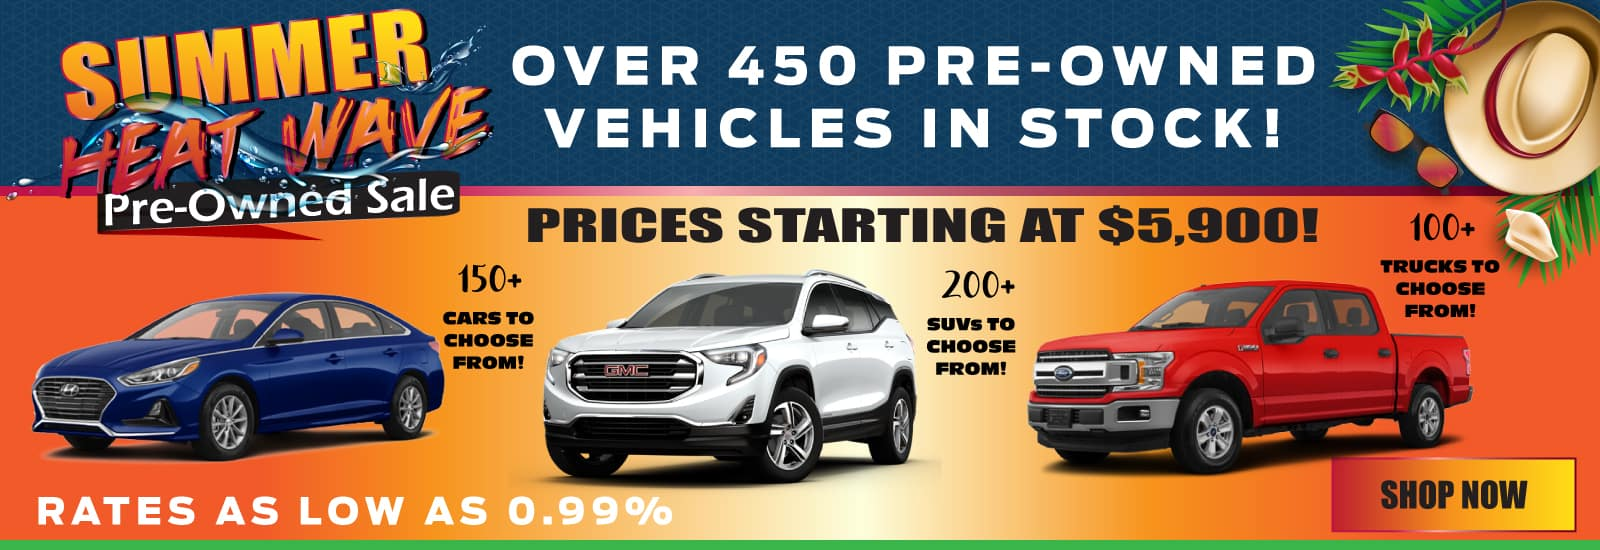 Over-450-Pre-Owned-Vehicles-In-Stock-Web-Banner-1600×550 (002) July